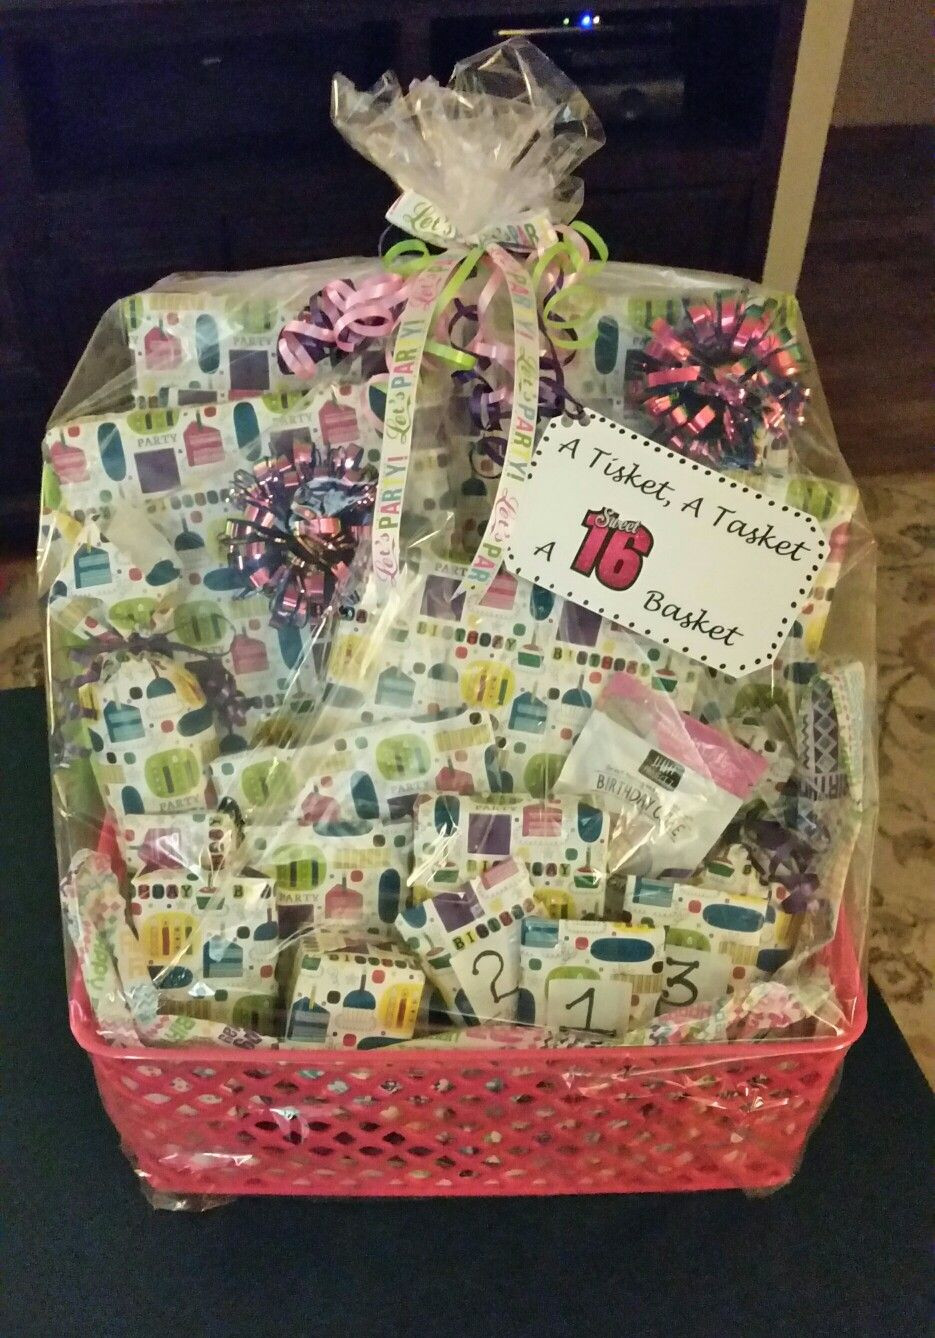 16Th Birthday Gift Ideas For Girls  A Tisket A Tasket A Sweet 16 Basket Filled with 16